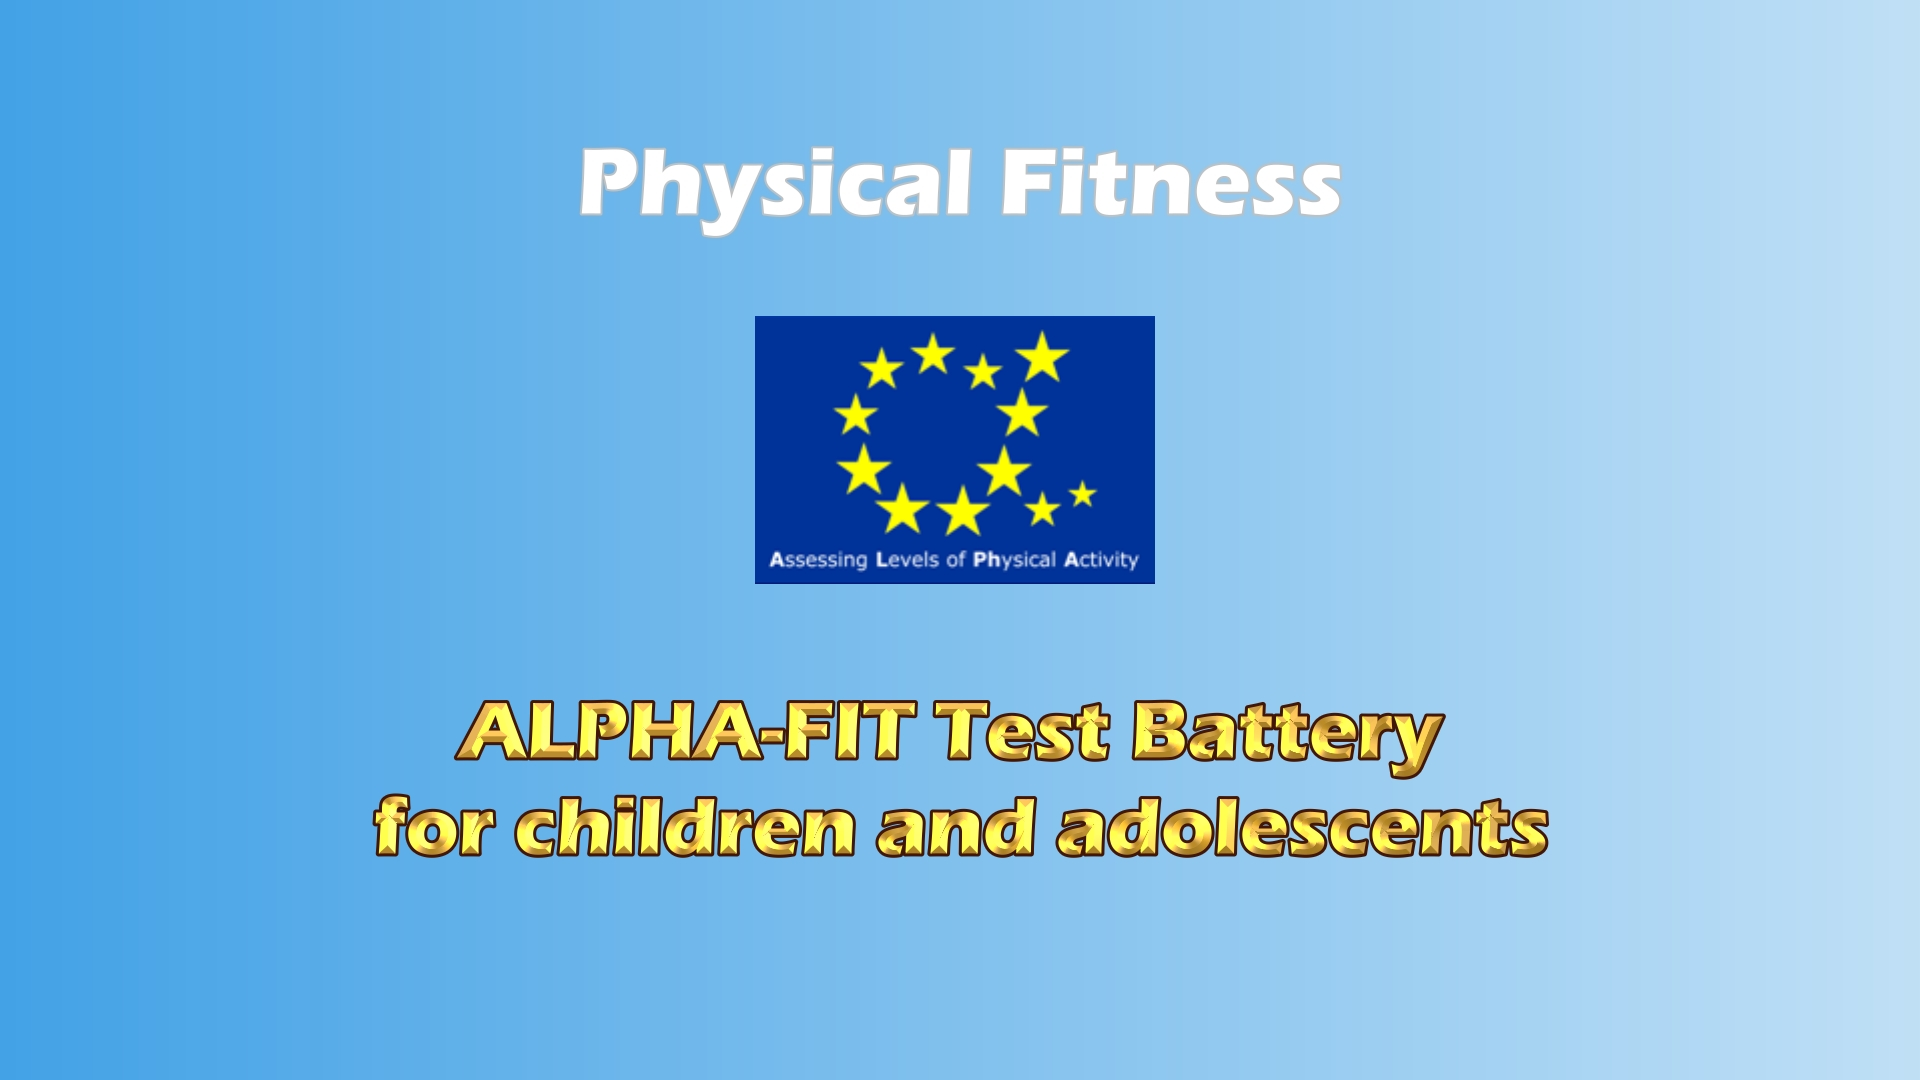 Alpha-fit physical fitness test battery for children